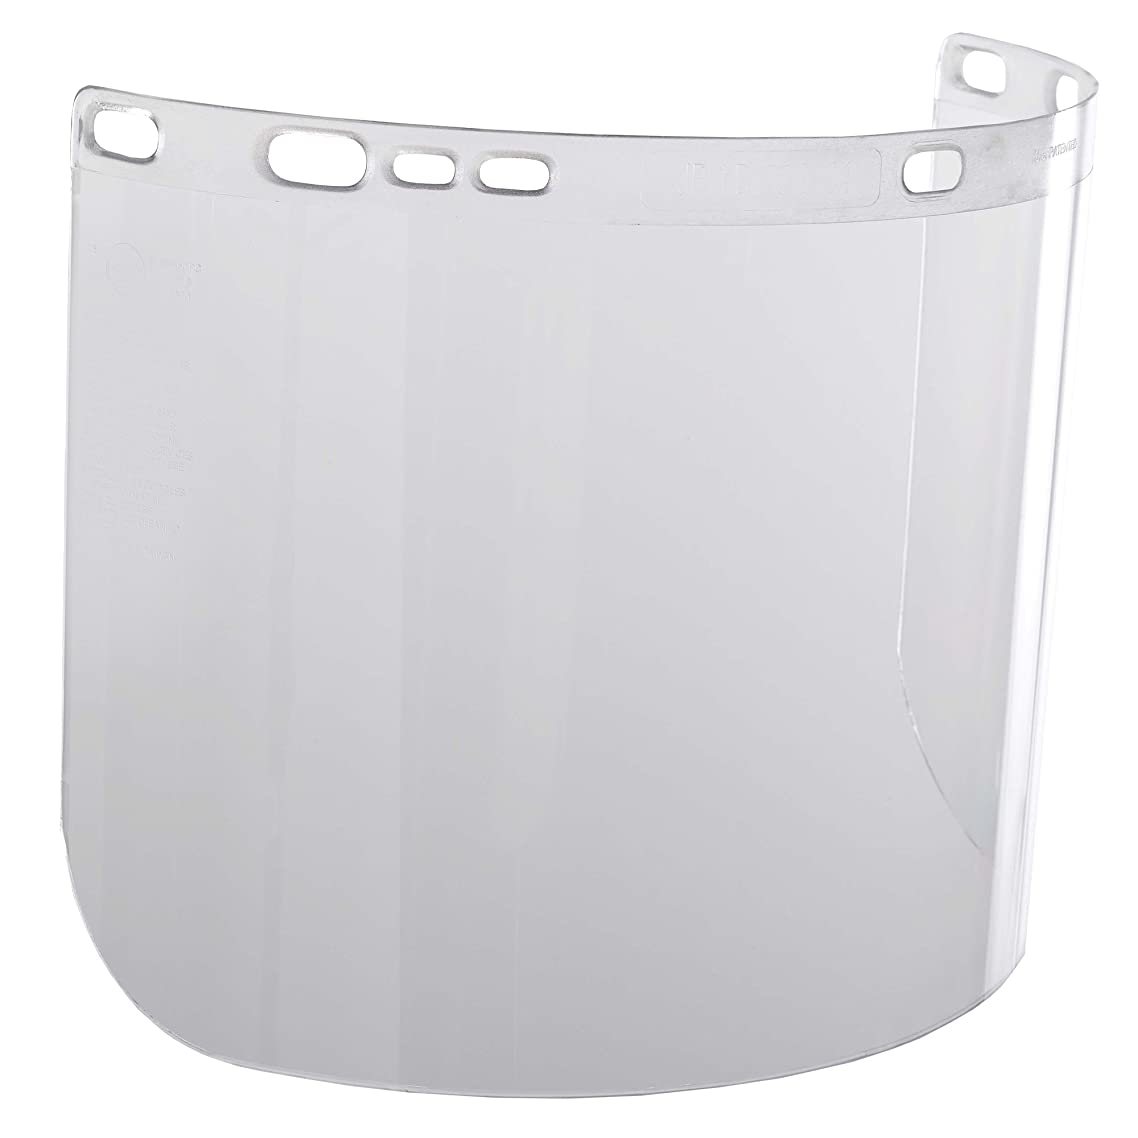 "Jackson Safety F20 High Impact Face Shield (14132), Polycarbonate, 8"" x 15.5"" x 0.06"", Clear, Face Protection, Unbound, 36 Shields / Case lwqswguu43119939"